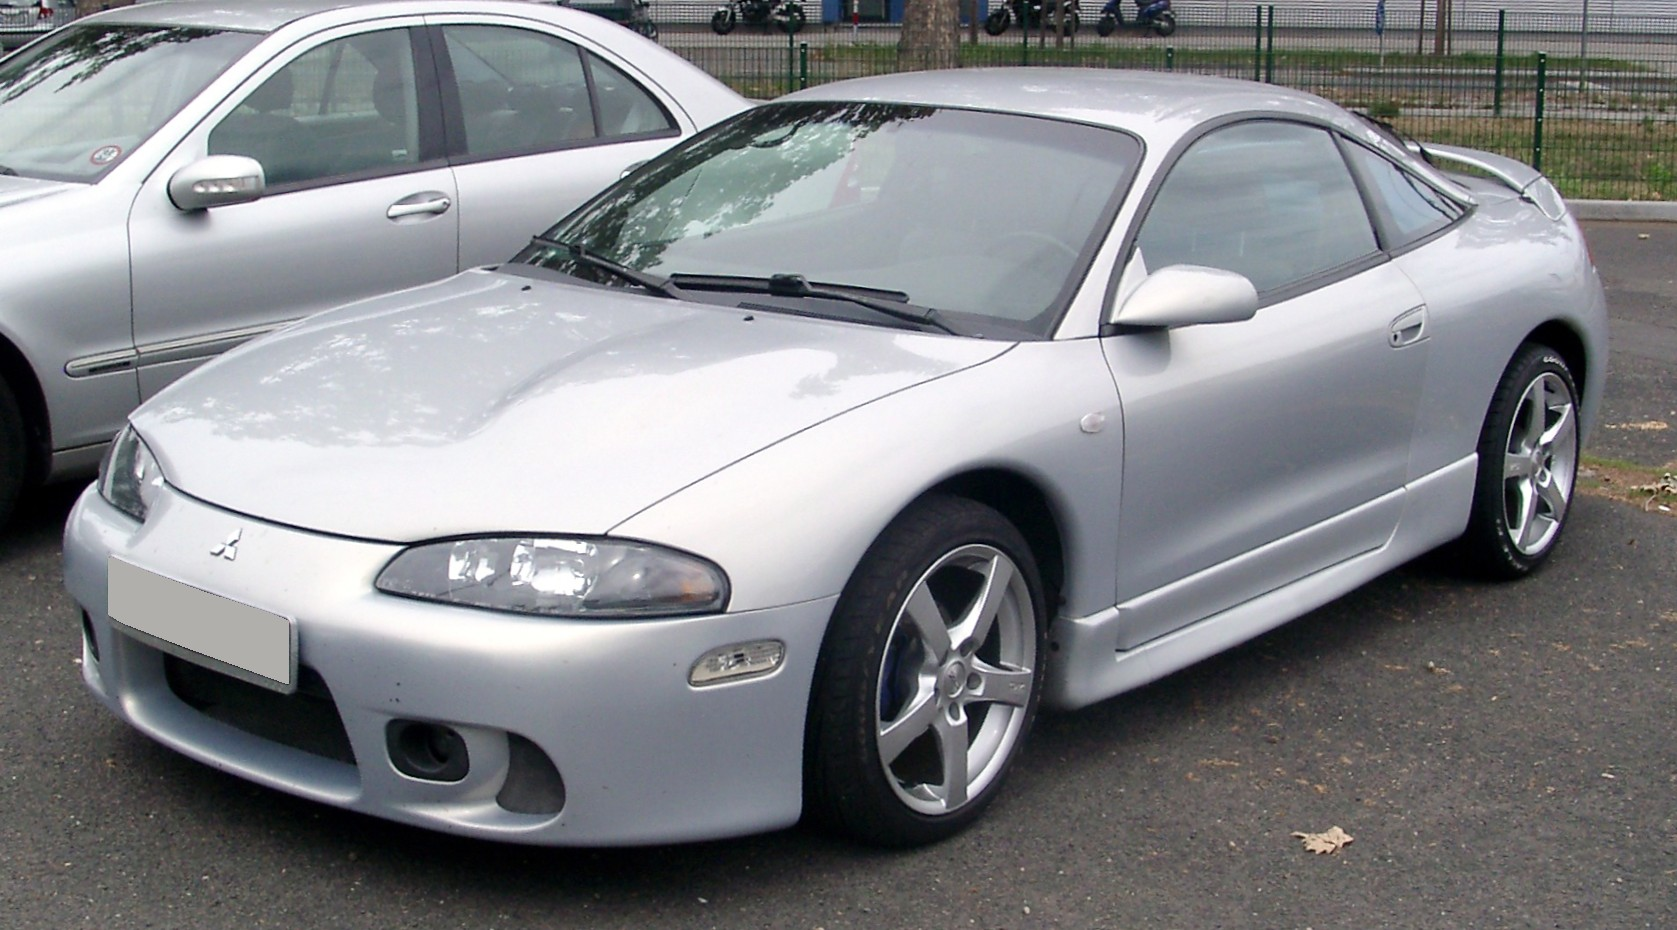 mitsubishi eclipse iv 2007 pictures #10